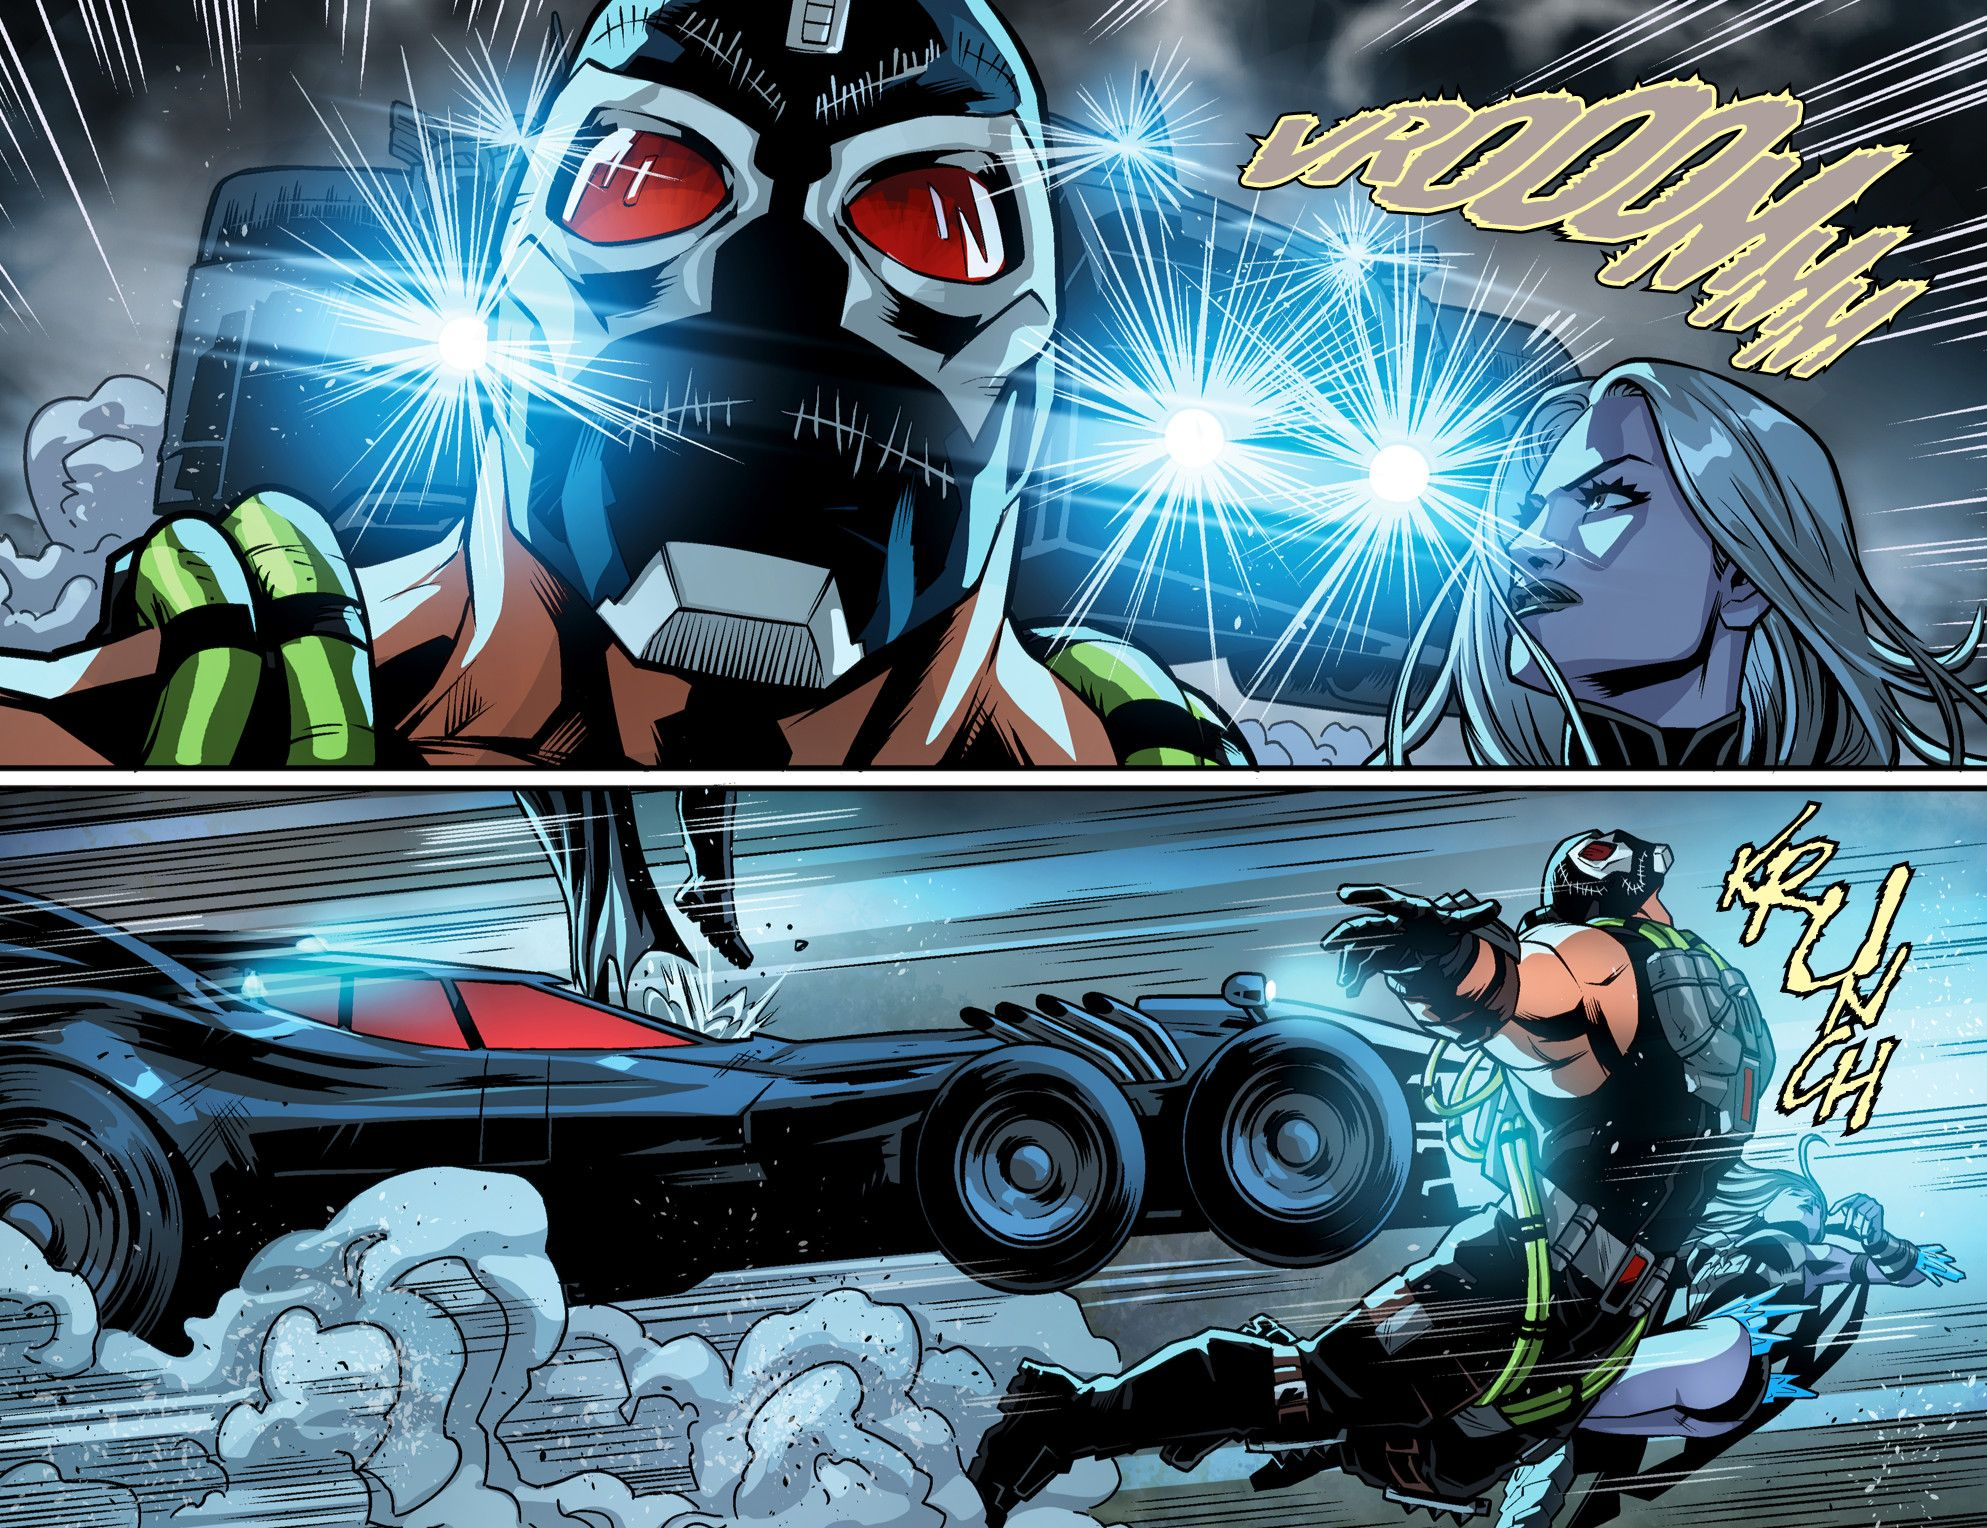 Injustice Gods Among Us Year Five Issue 6 Read Injustice Gods Among Us Year Five Issue 6 Com Comics Comic Movies Comics Online